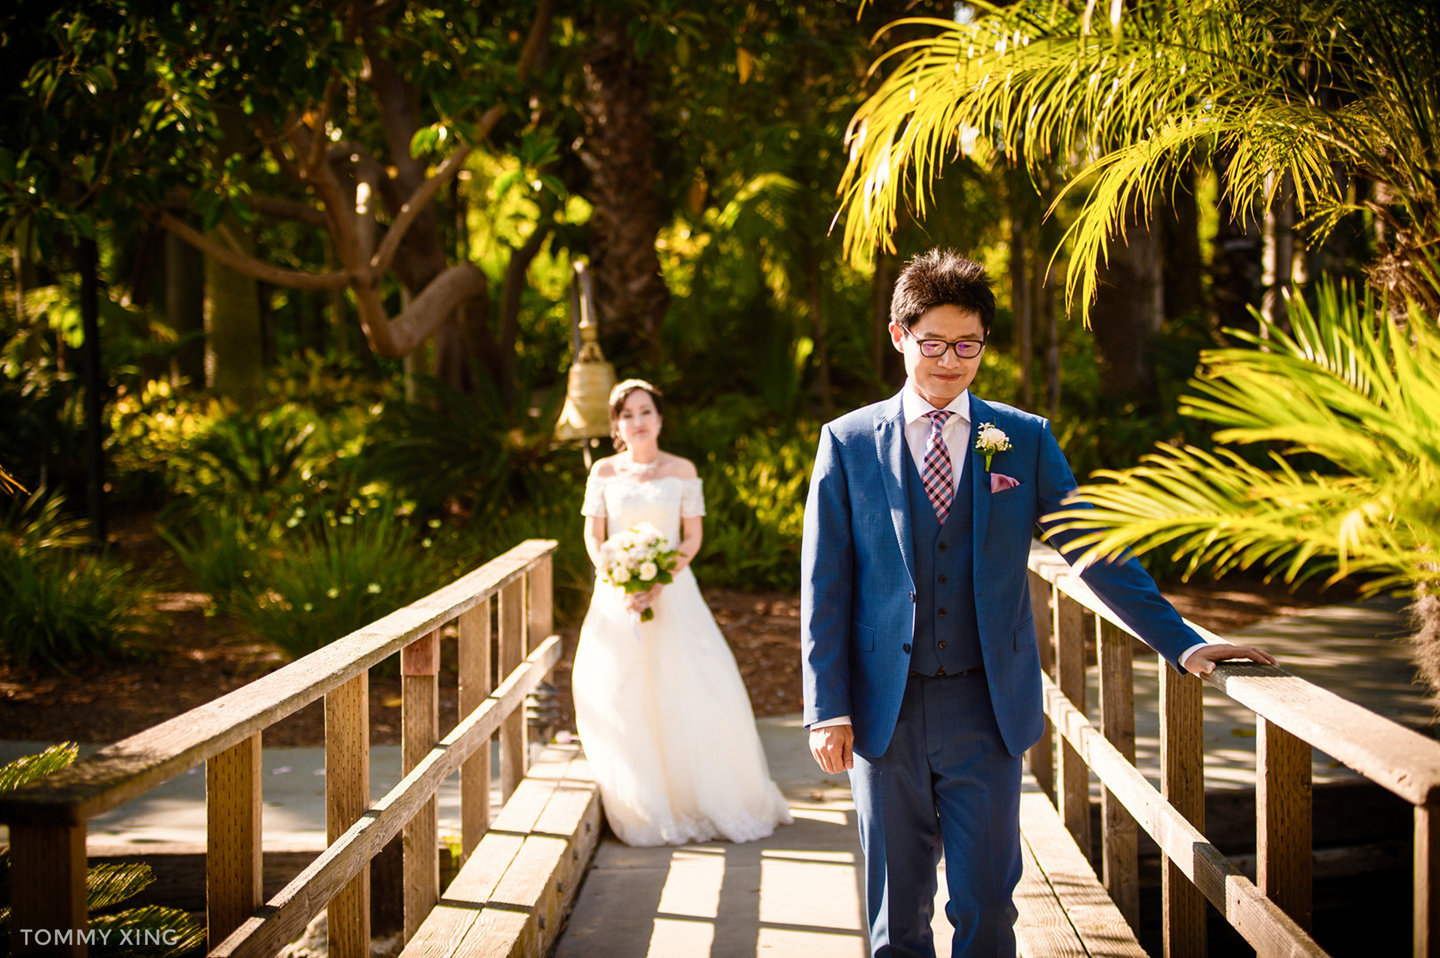 Paradise Point Resort Wedding Xiaolu & Bin San Diego 圣地亚哥婚礼摄影跟拍 Tommy Xing Photography 洛杉矶婚礼婚纱照摄影师 059.jpg